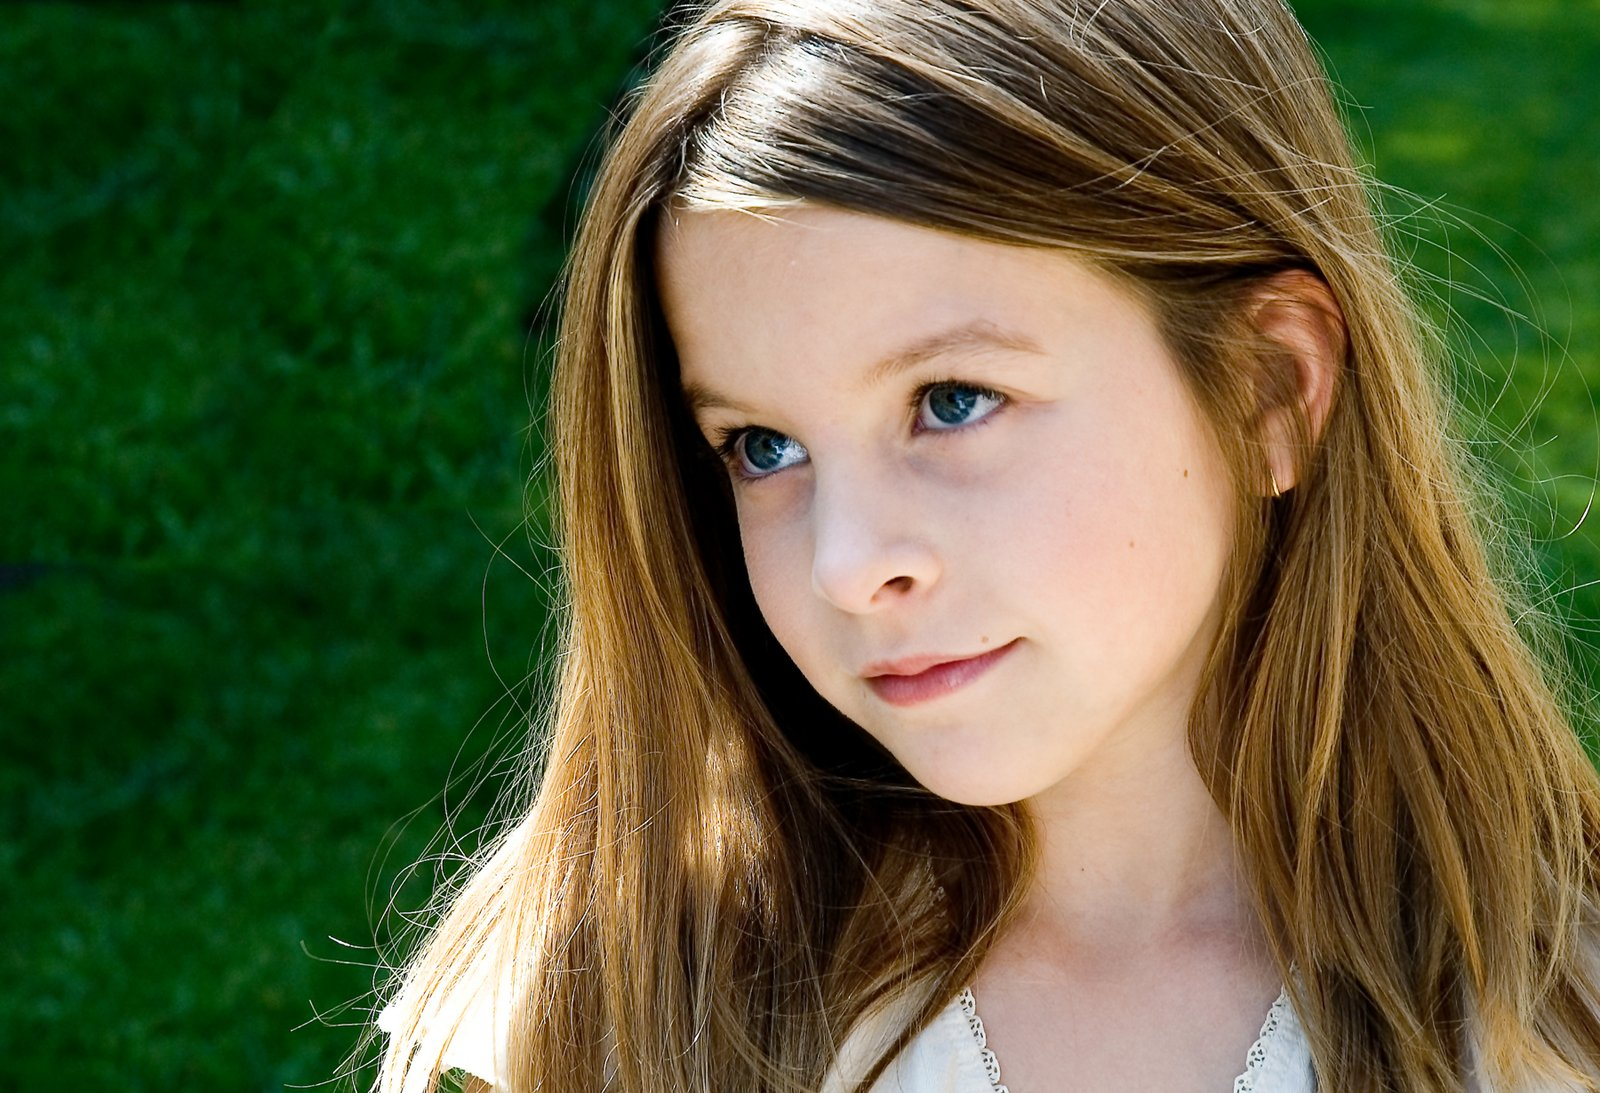 Free Young Girl 3 Stock Photo - Freeimagescom-3178